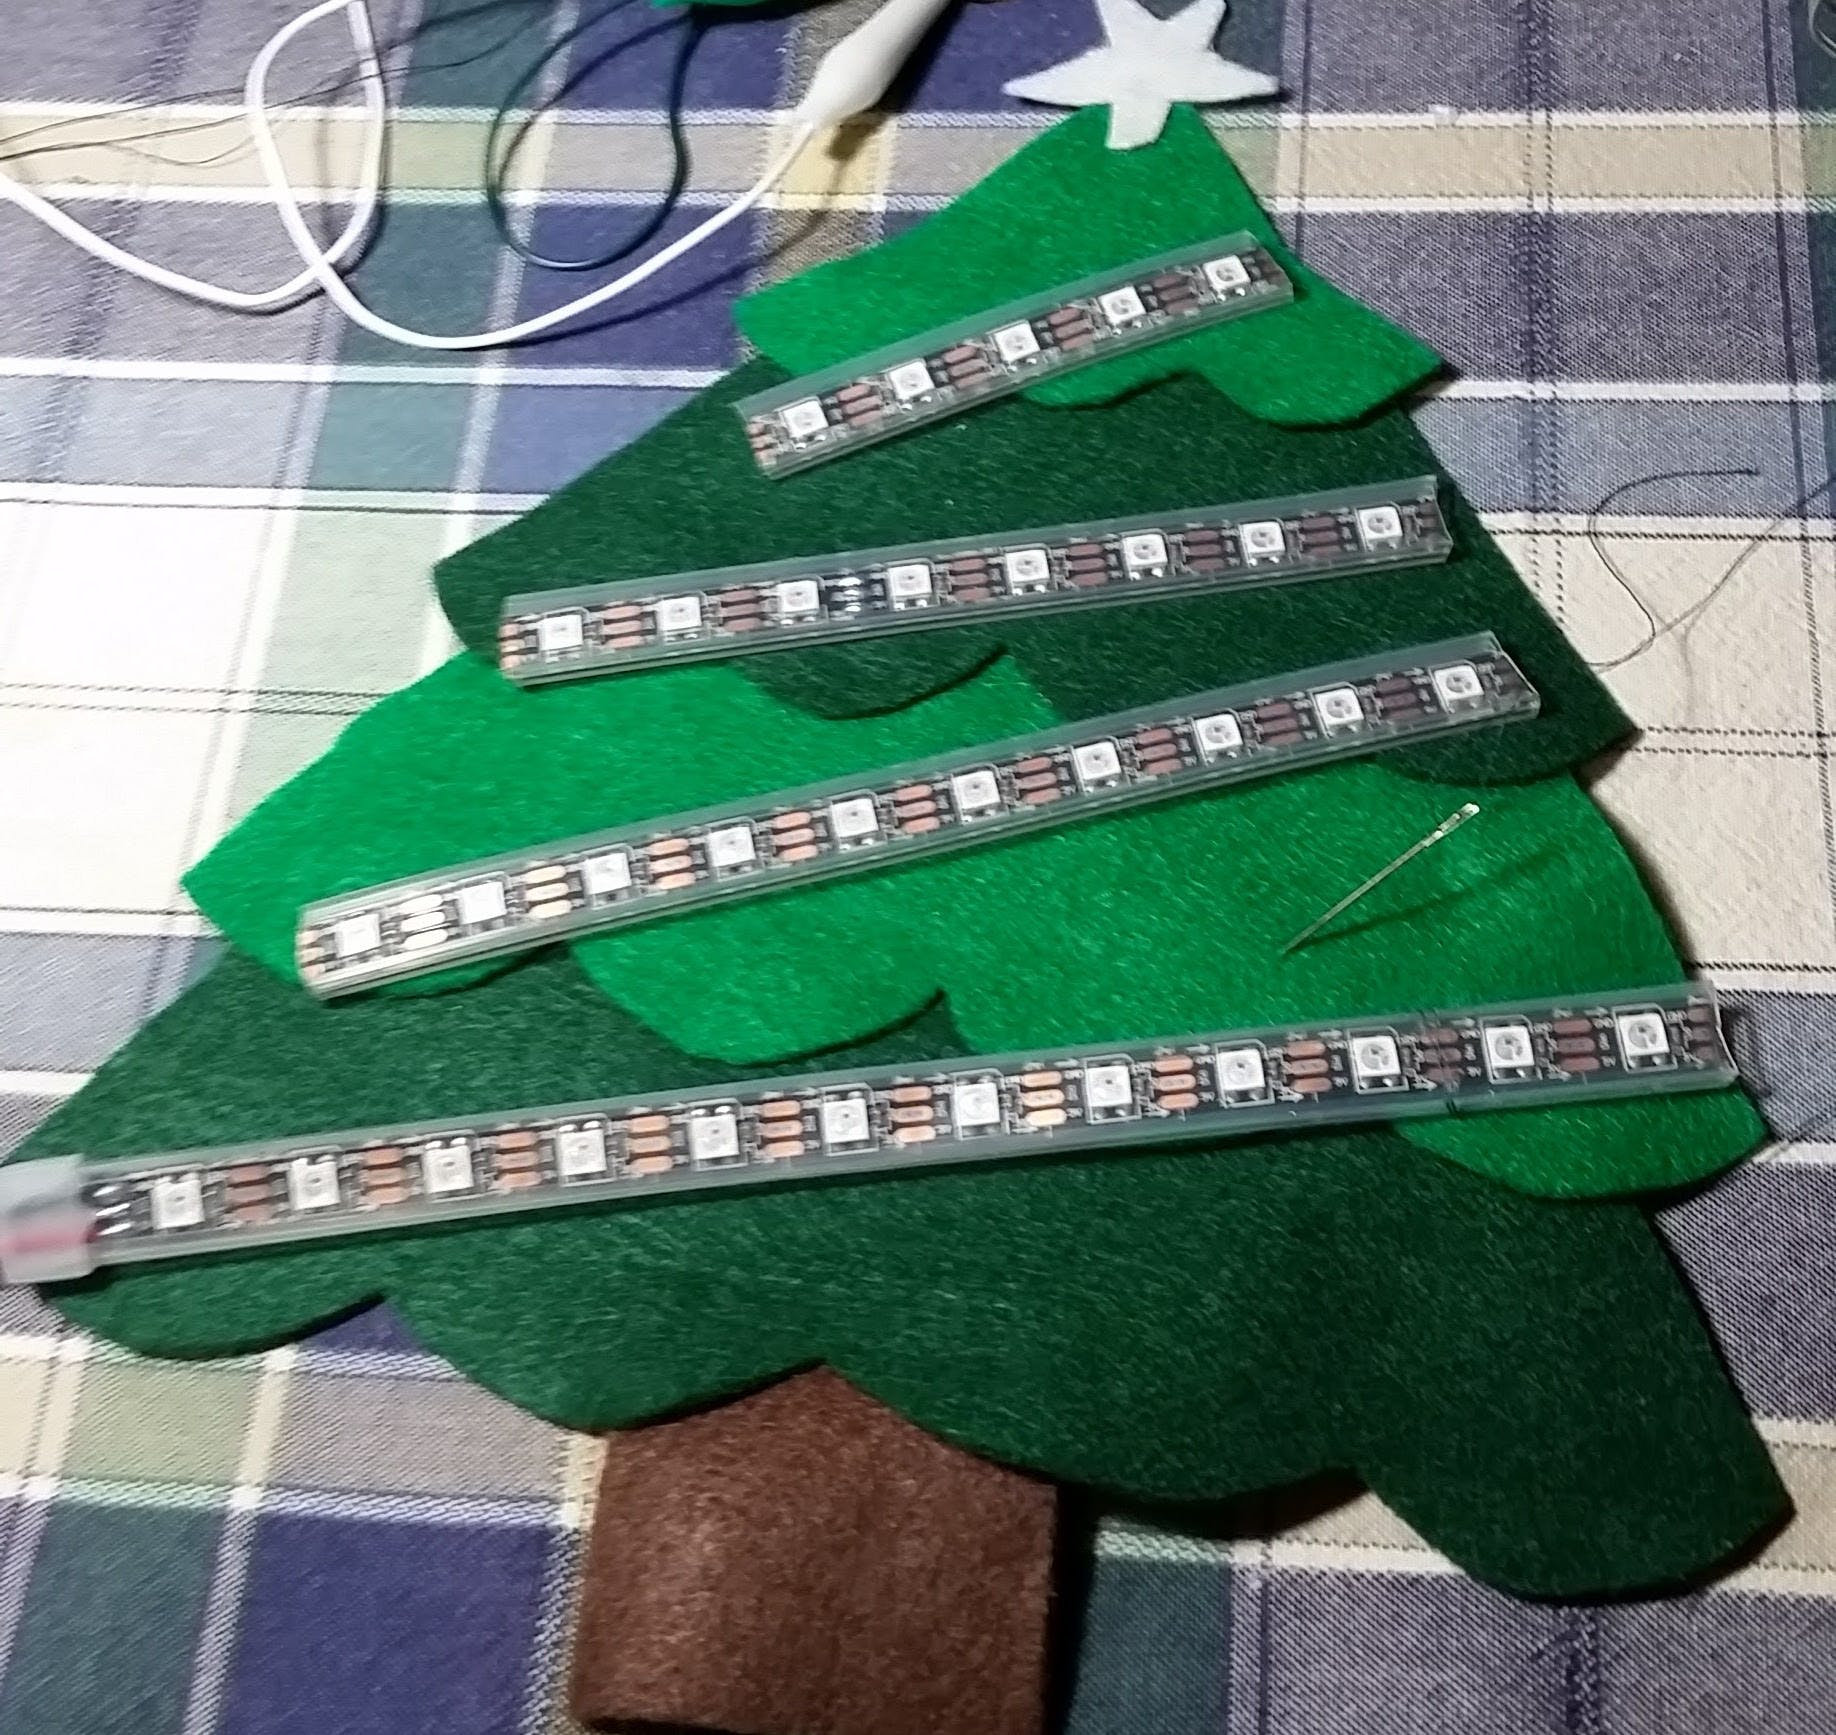 After hot-gluing the tree, I cut the NeoPixel strips to size.